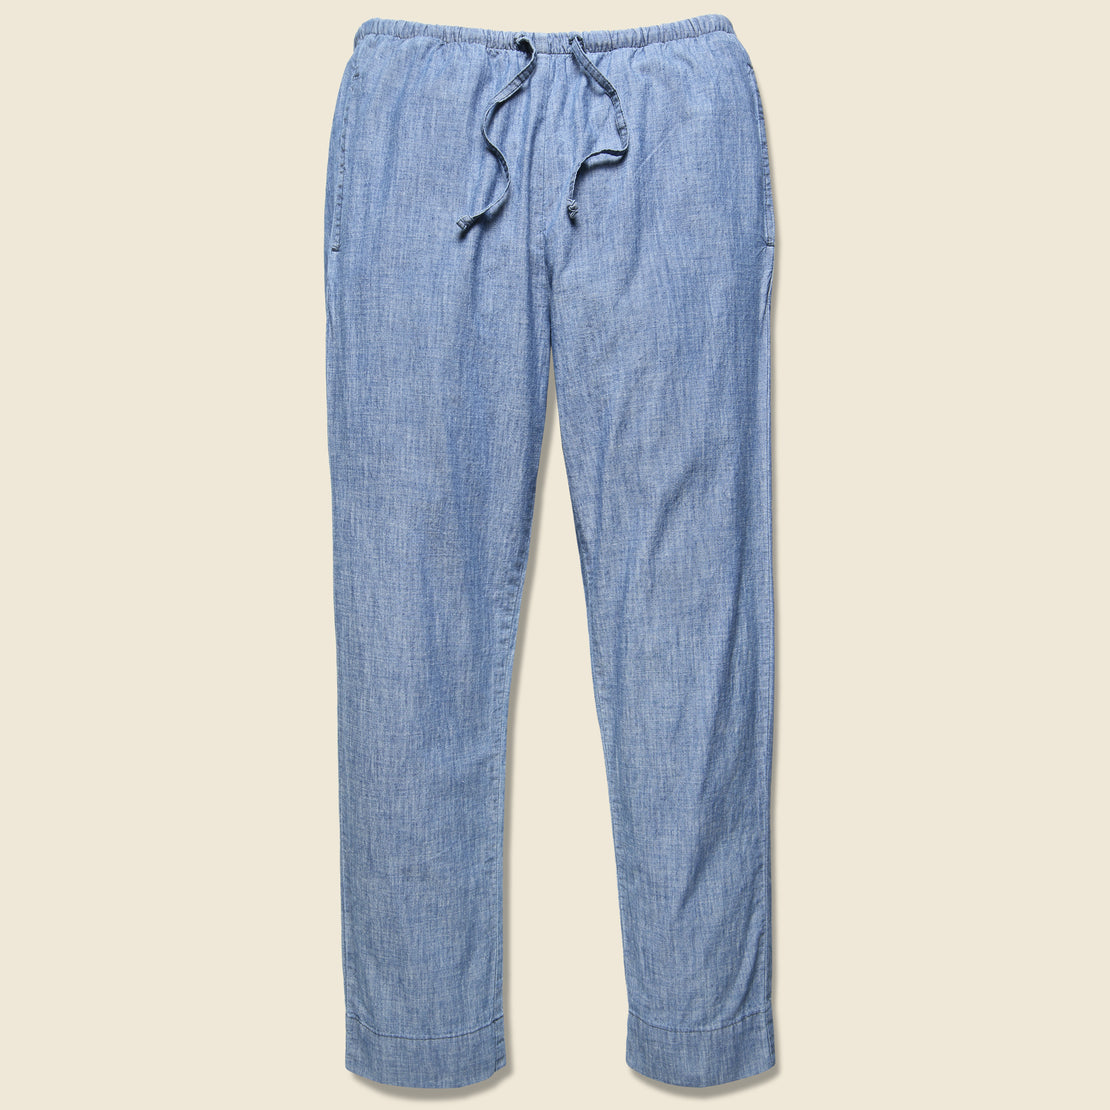 Save Khaki Haven Pant - Chambray